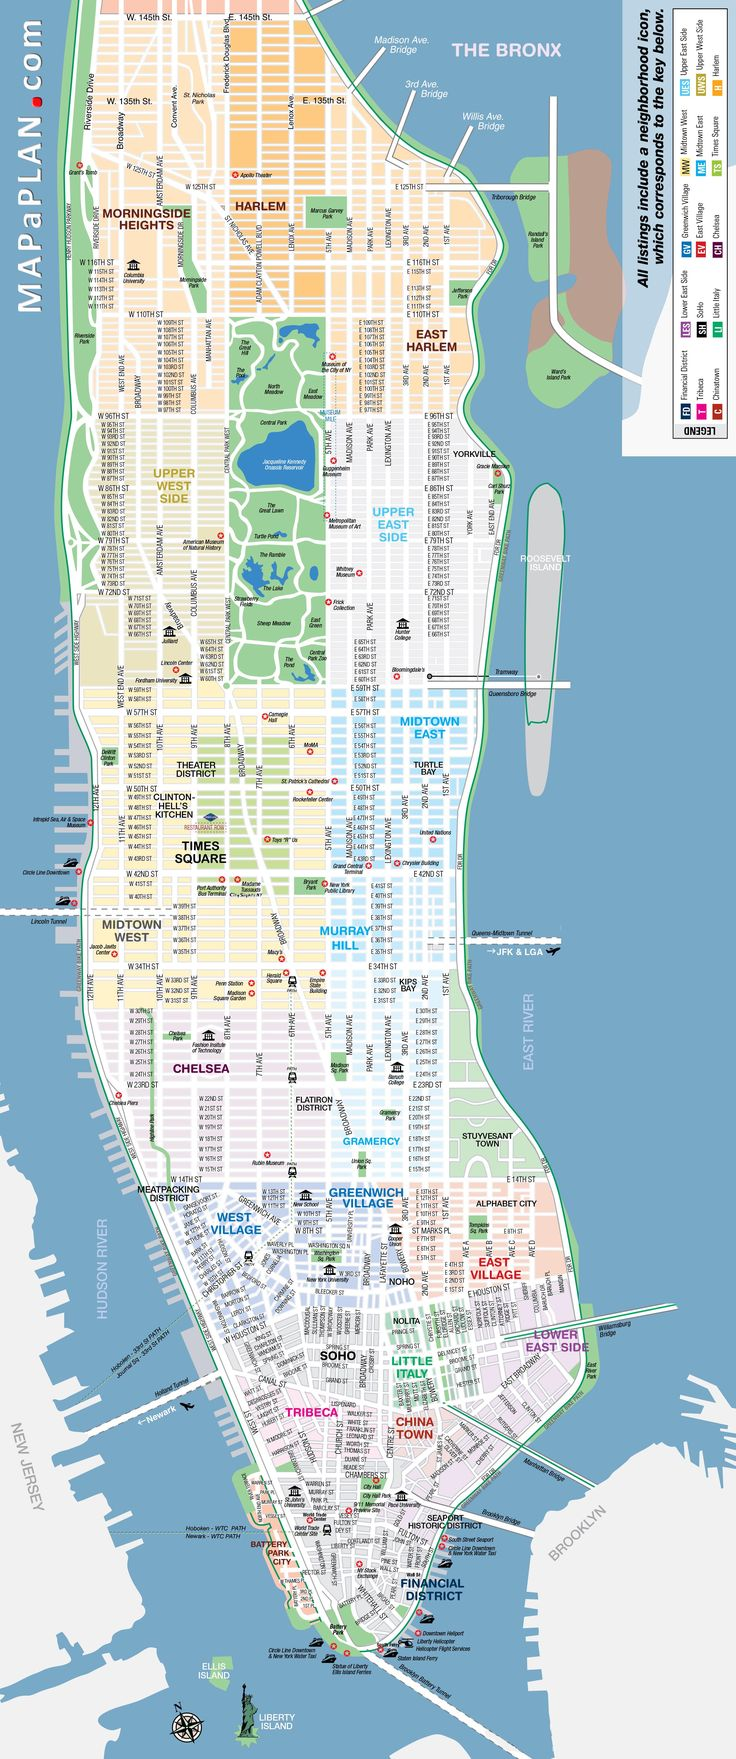 Unique Manhattan Map Ideas On Pinterest Map Of Manhattan - District of downloadable us road map